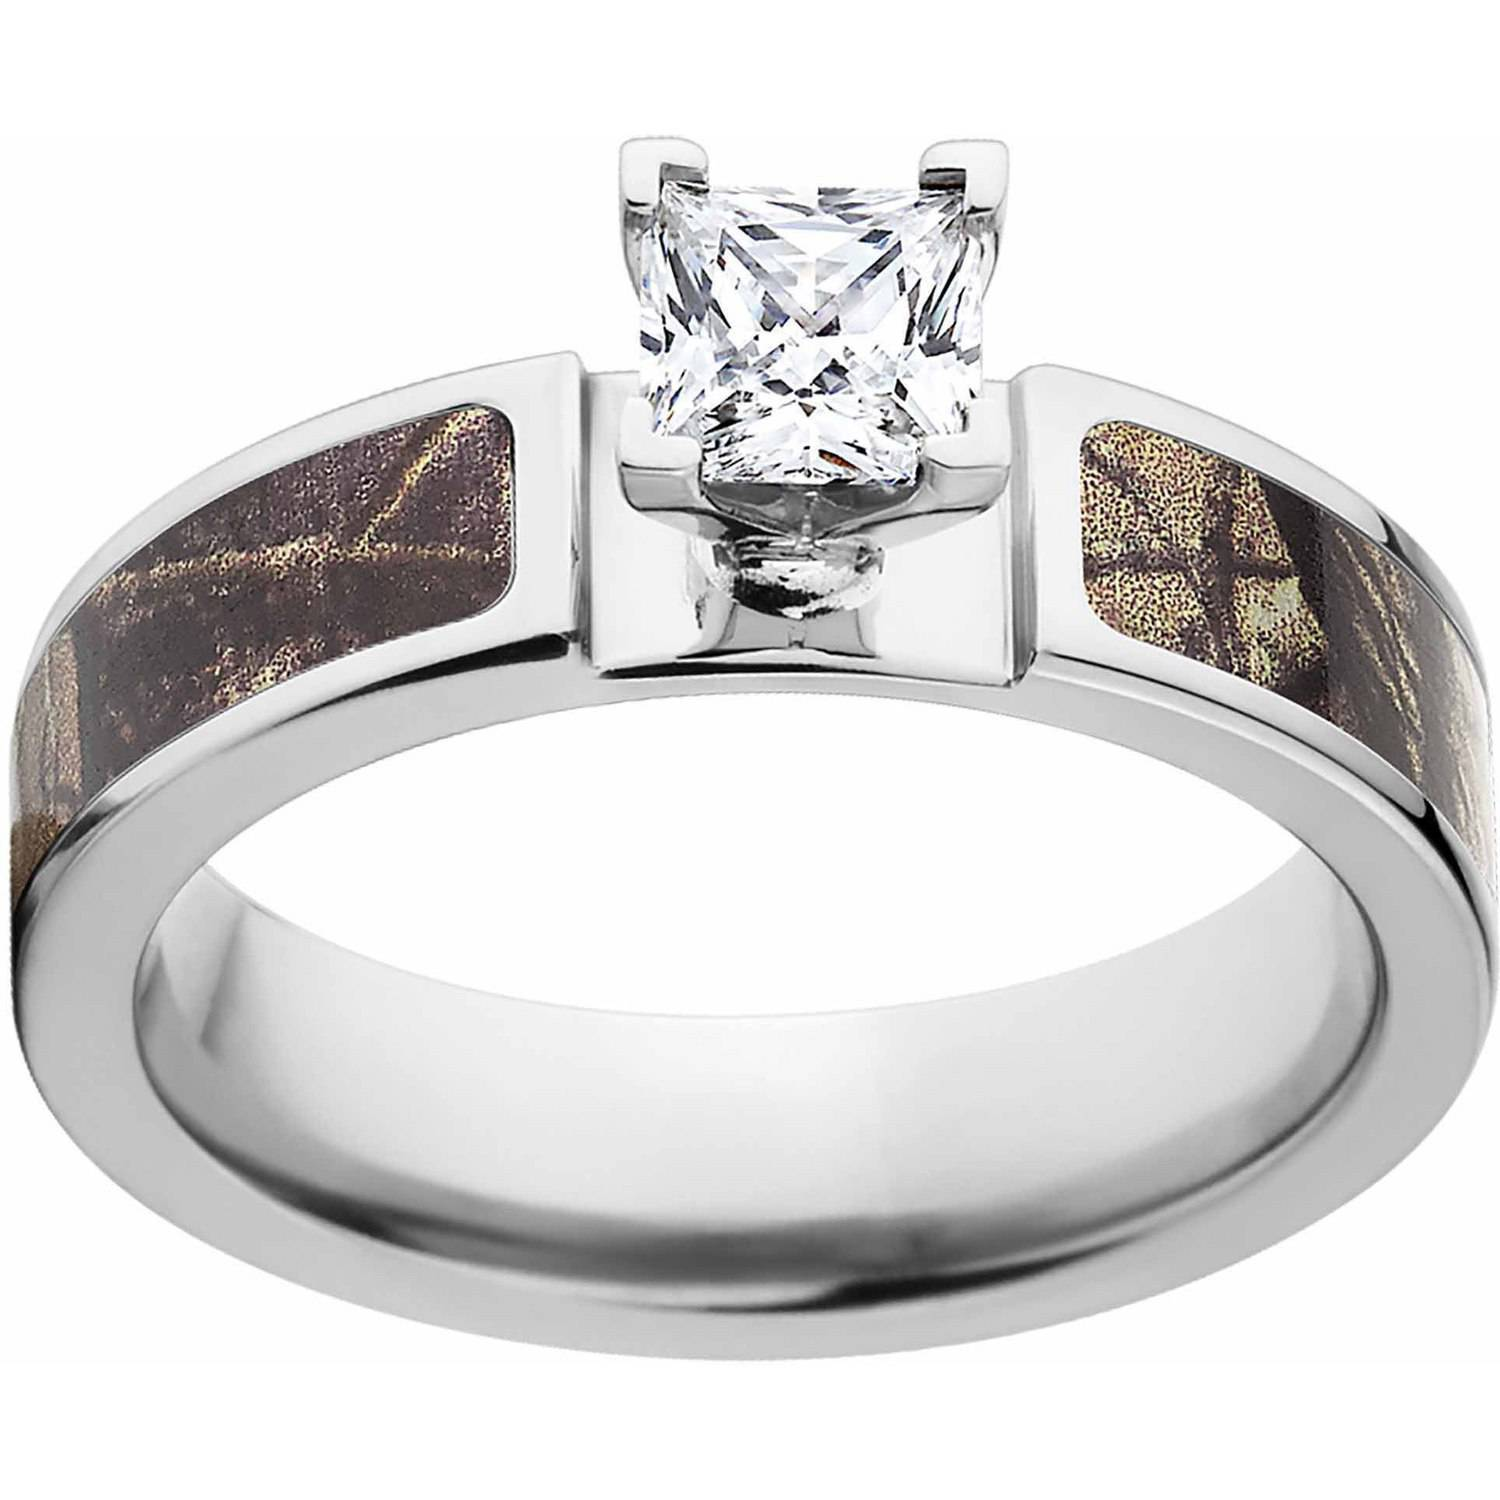 Realtree AP Women's Camo 1 Carat T.G.W. Princess CZ in 14kt Whit Gold Prong Setting Cobalt Engagement Ring with Polished Edges and Deluxe Comfort Fit